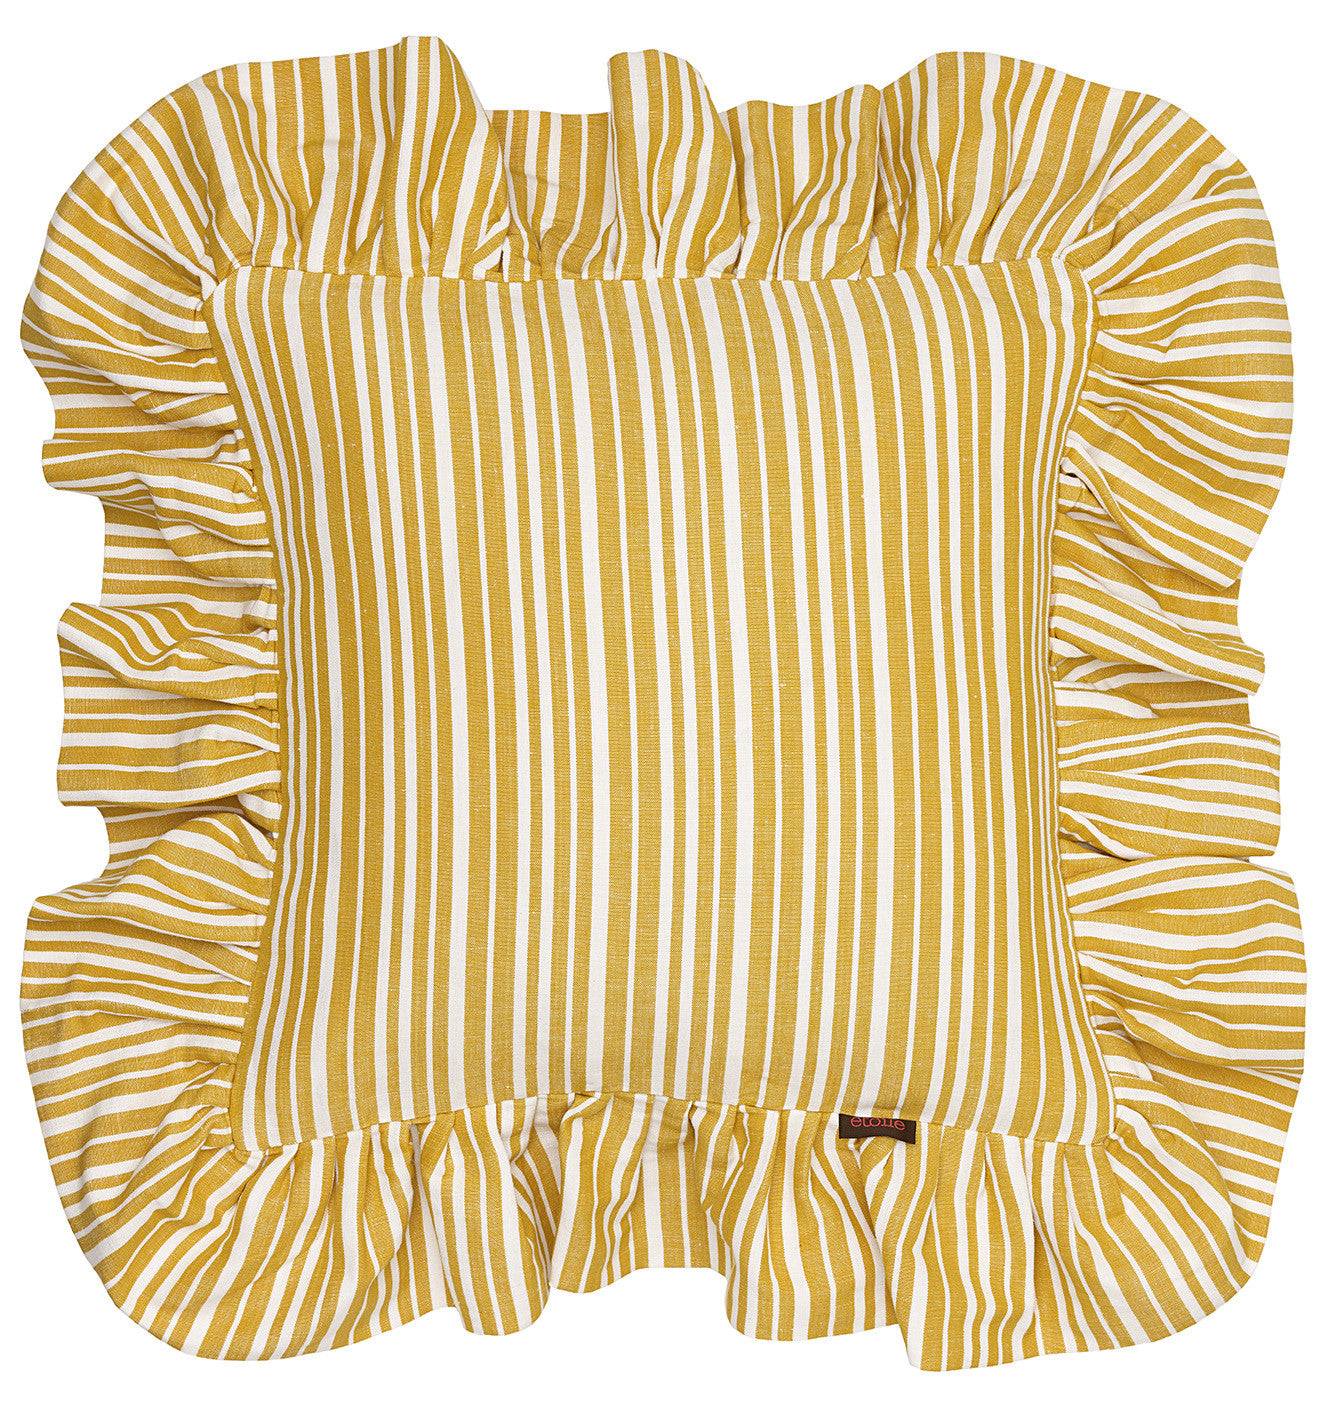 Palermo Ticking Stripe Ruffle Decorative Throw Pillow in Mustard Gold 45x45cm 18x18""